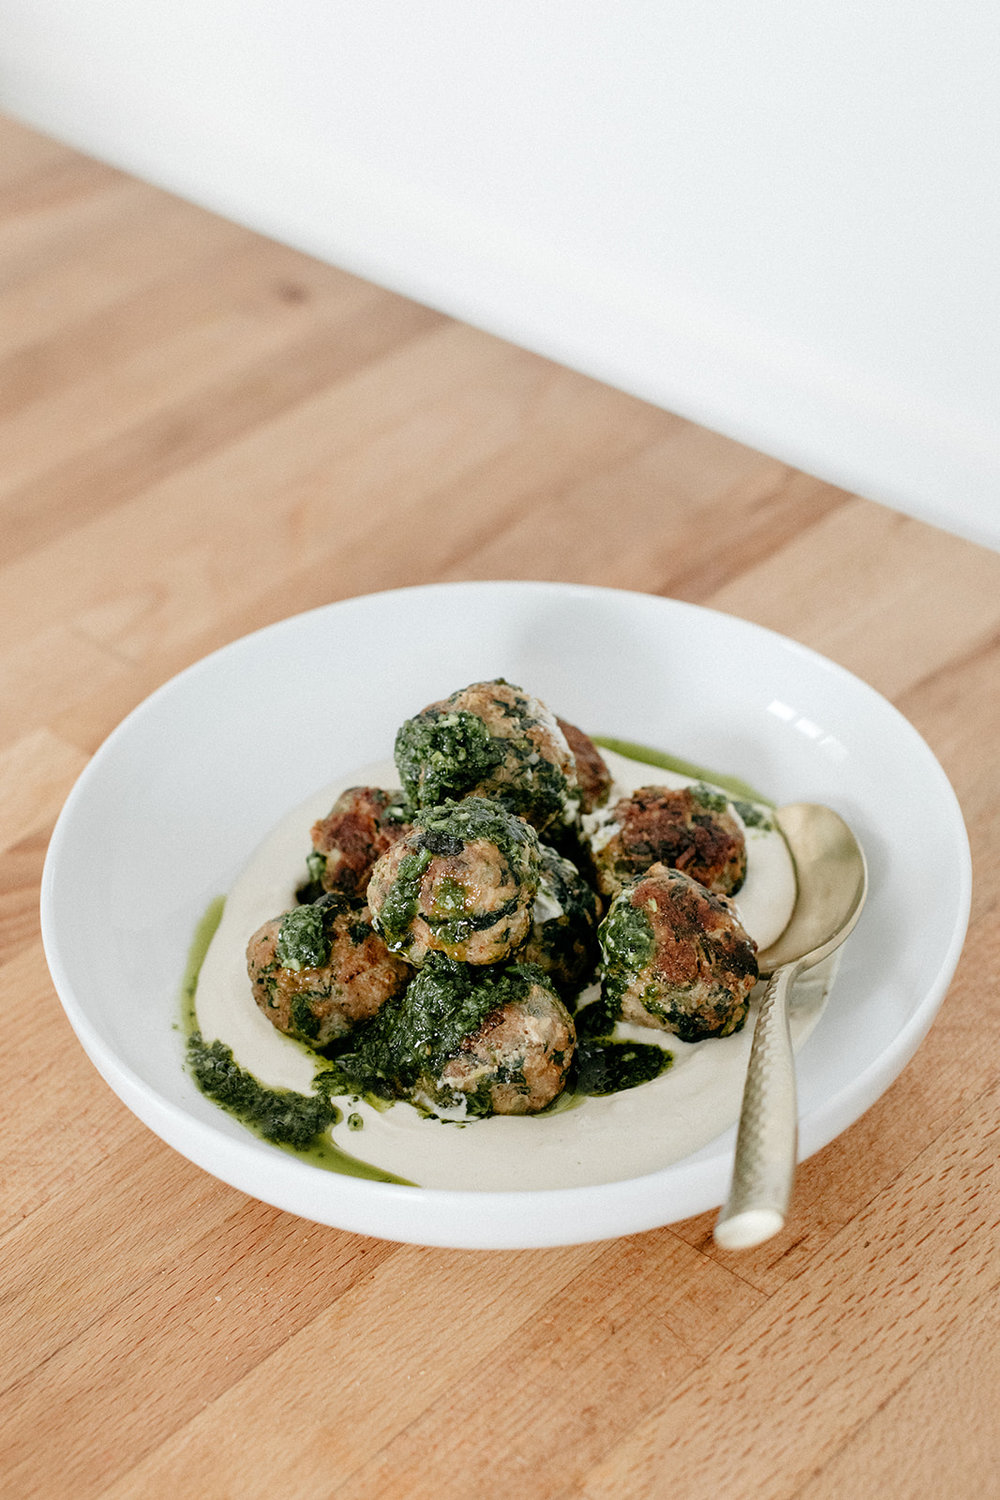 1-31-19-molly-yeh-turkey-sausage-meatballs-4.jpg